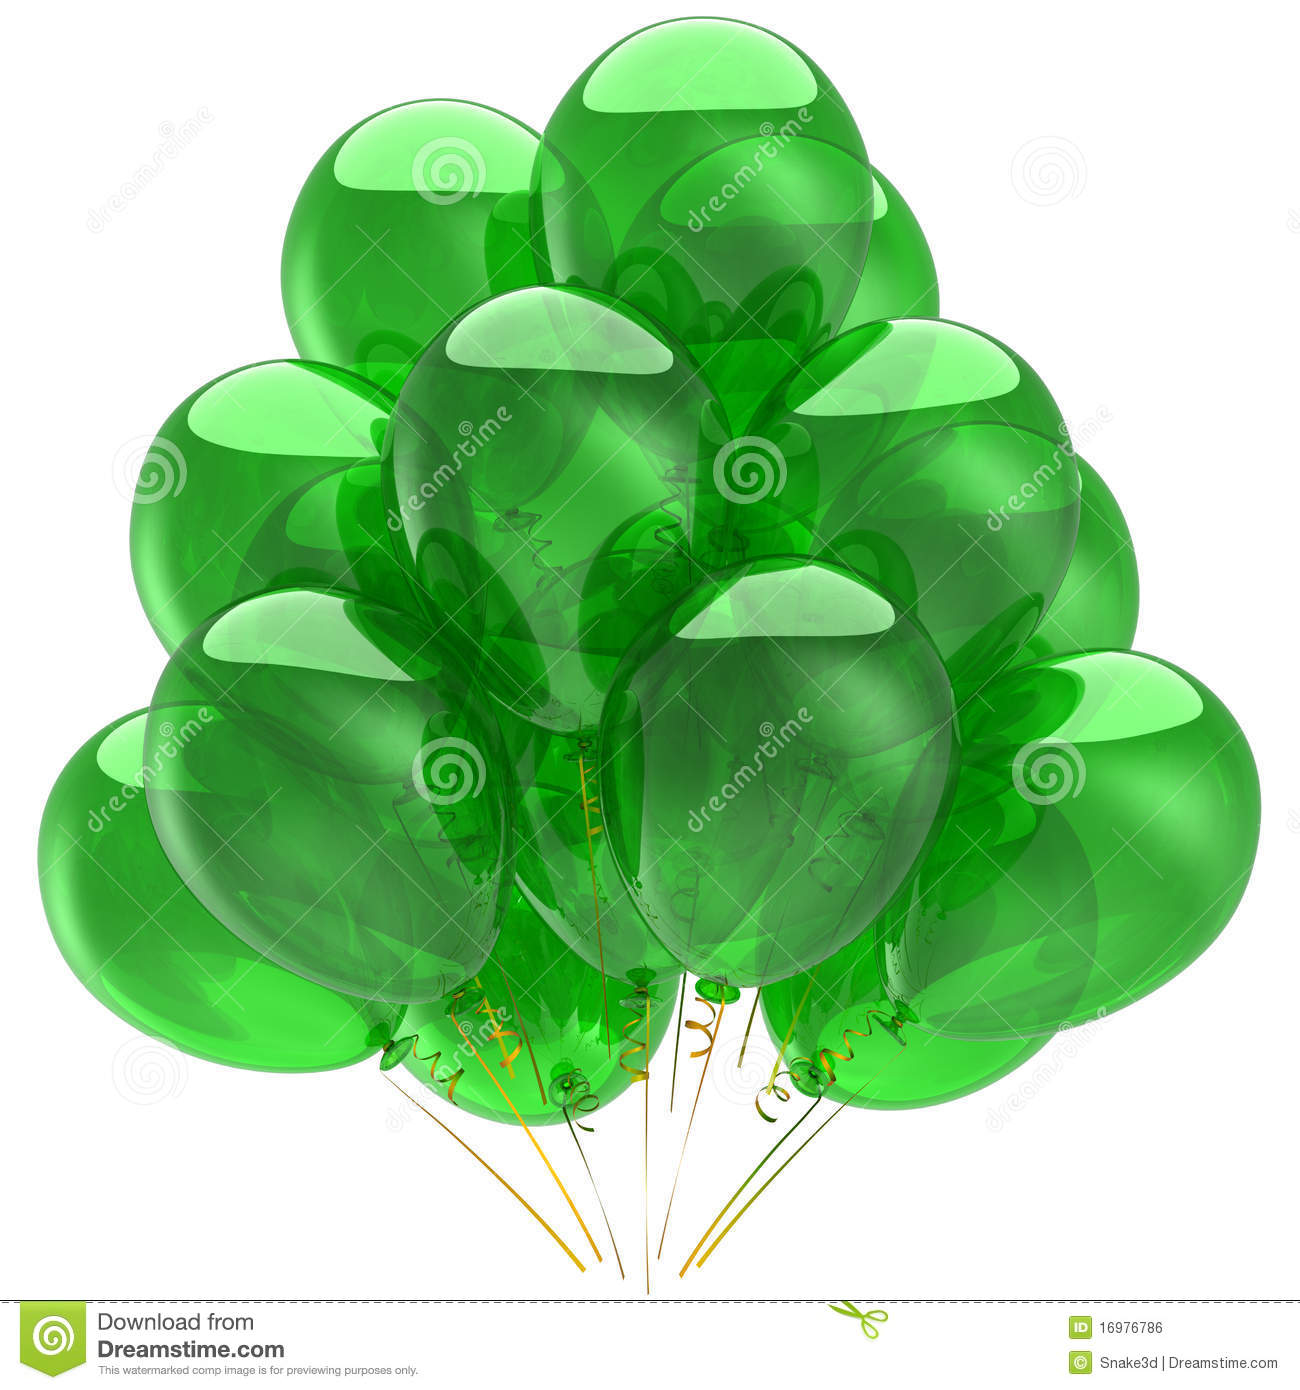 Green Helium Ballons (Hi-Res) Royalty Free Stock Image - Image